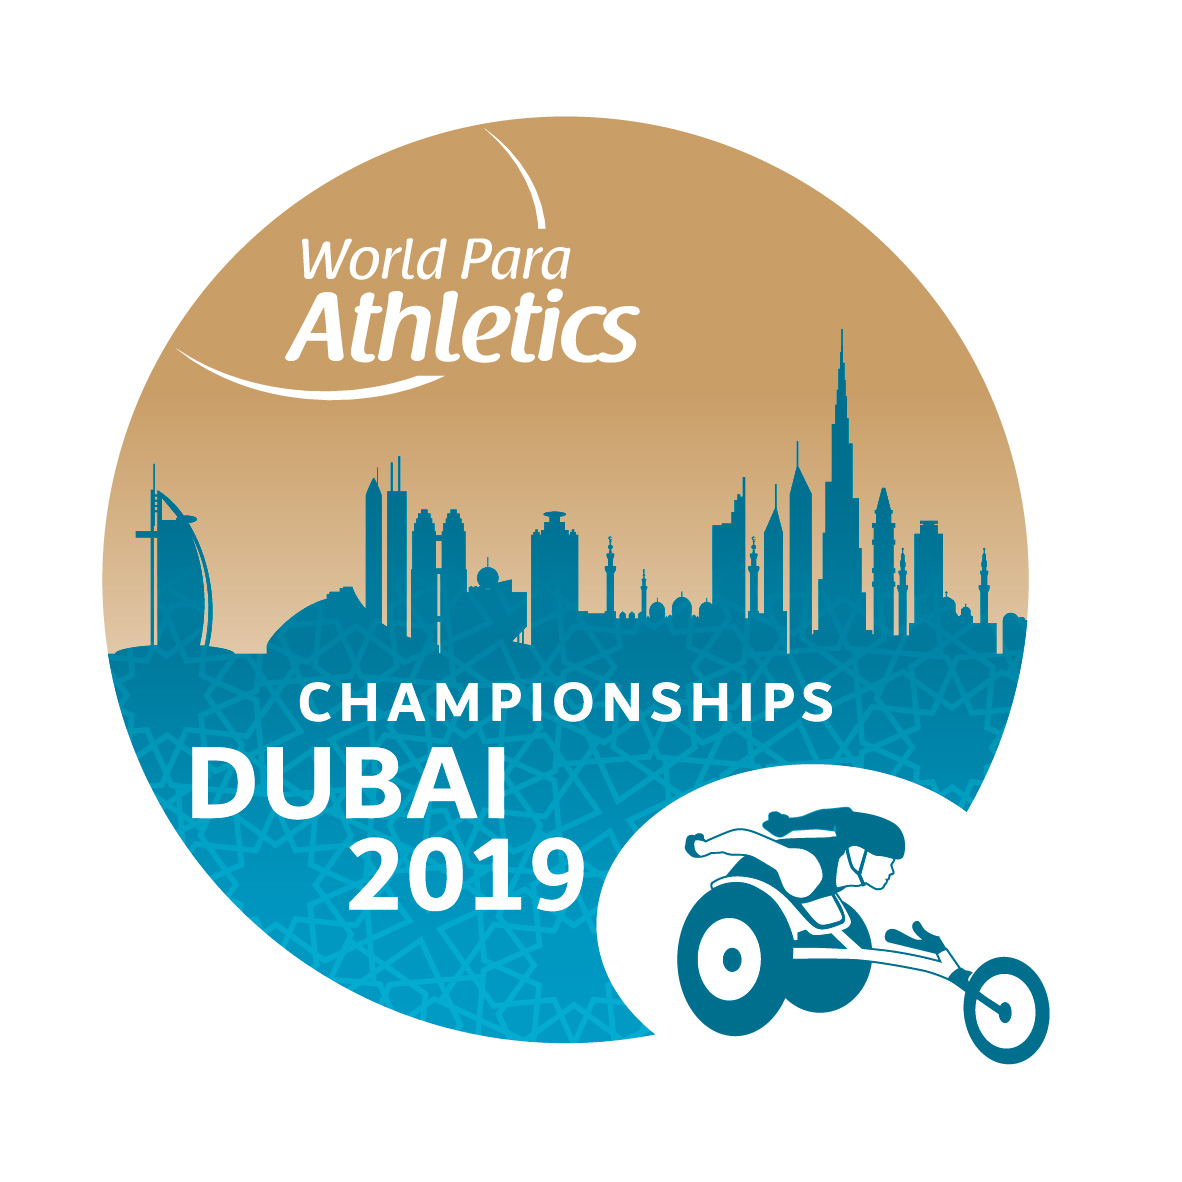 the official logo of the Dubai 2019 World Para Athletics Championships